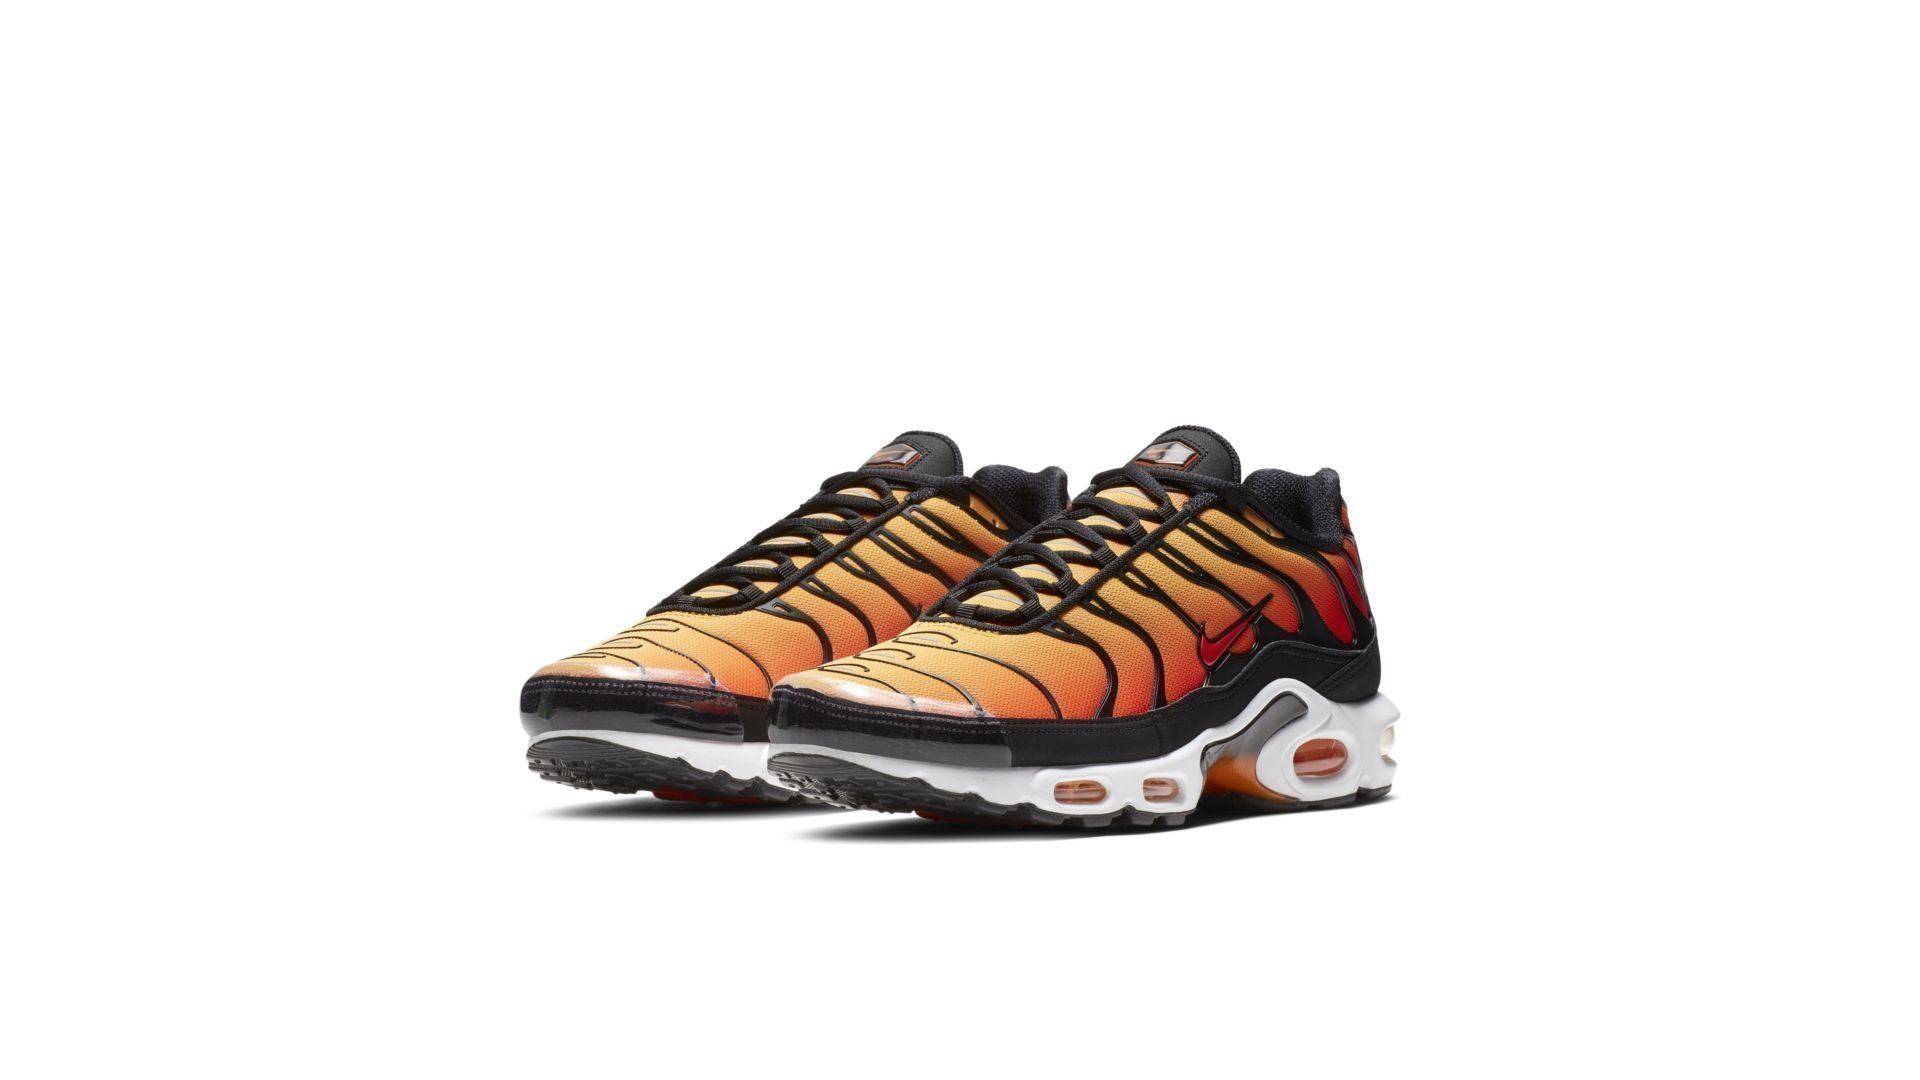 Nike Air Max Plus OG 'Sunset' (BQ4629-001)